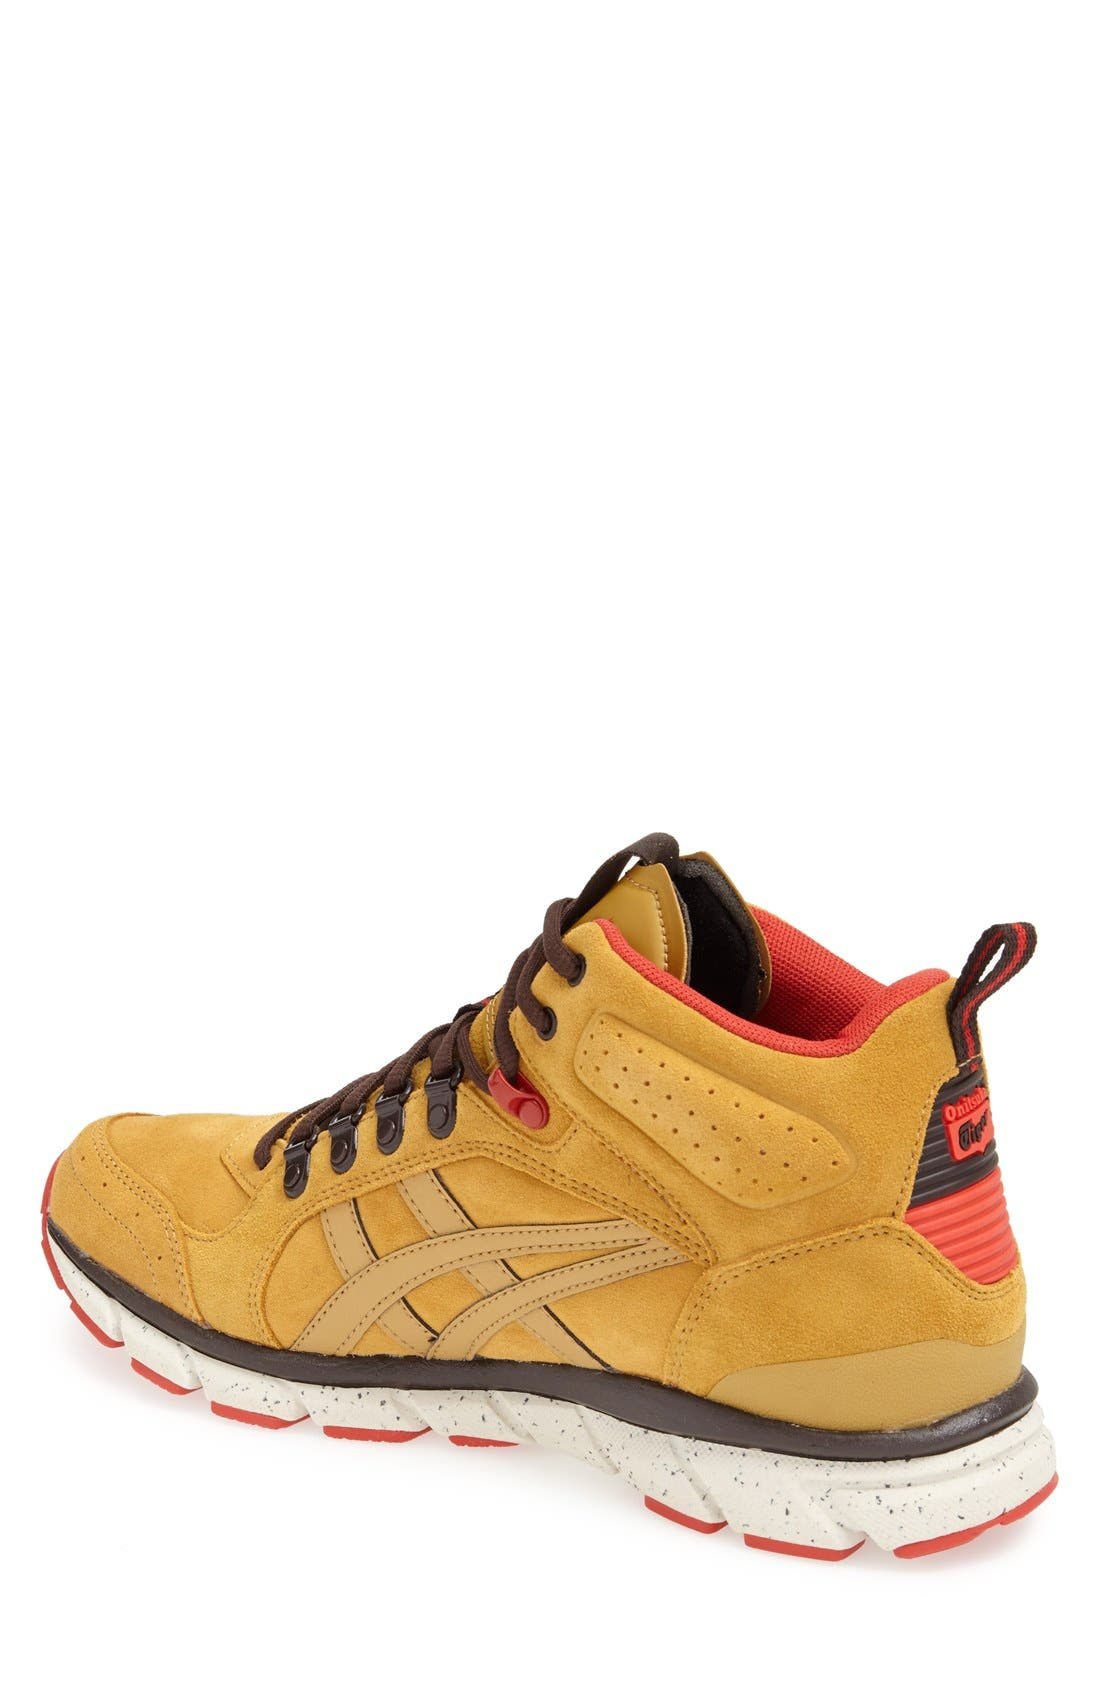 Onitsuka Tiger 'Harandia MT' Sneaker,                             Alternate thumbnail 3, color,                             750